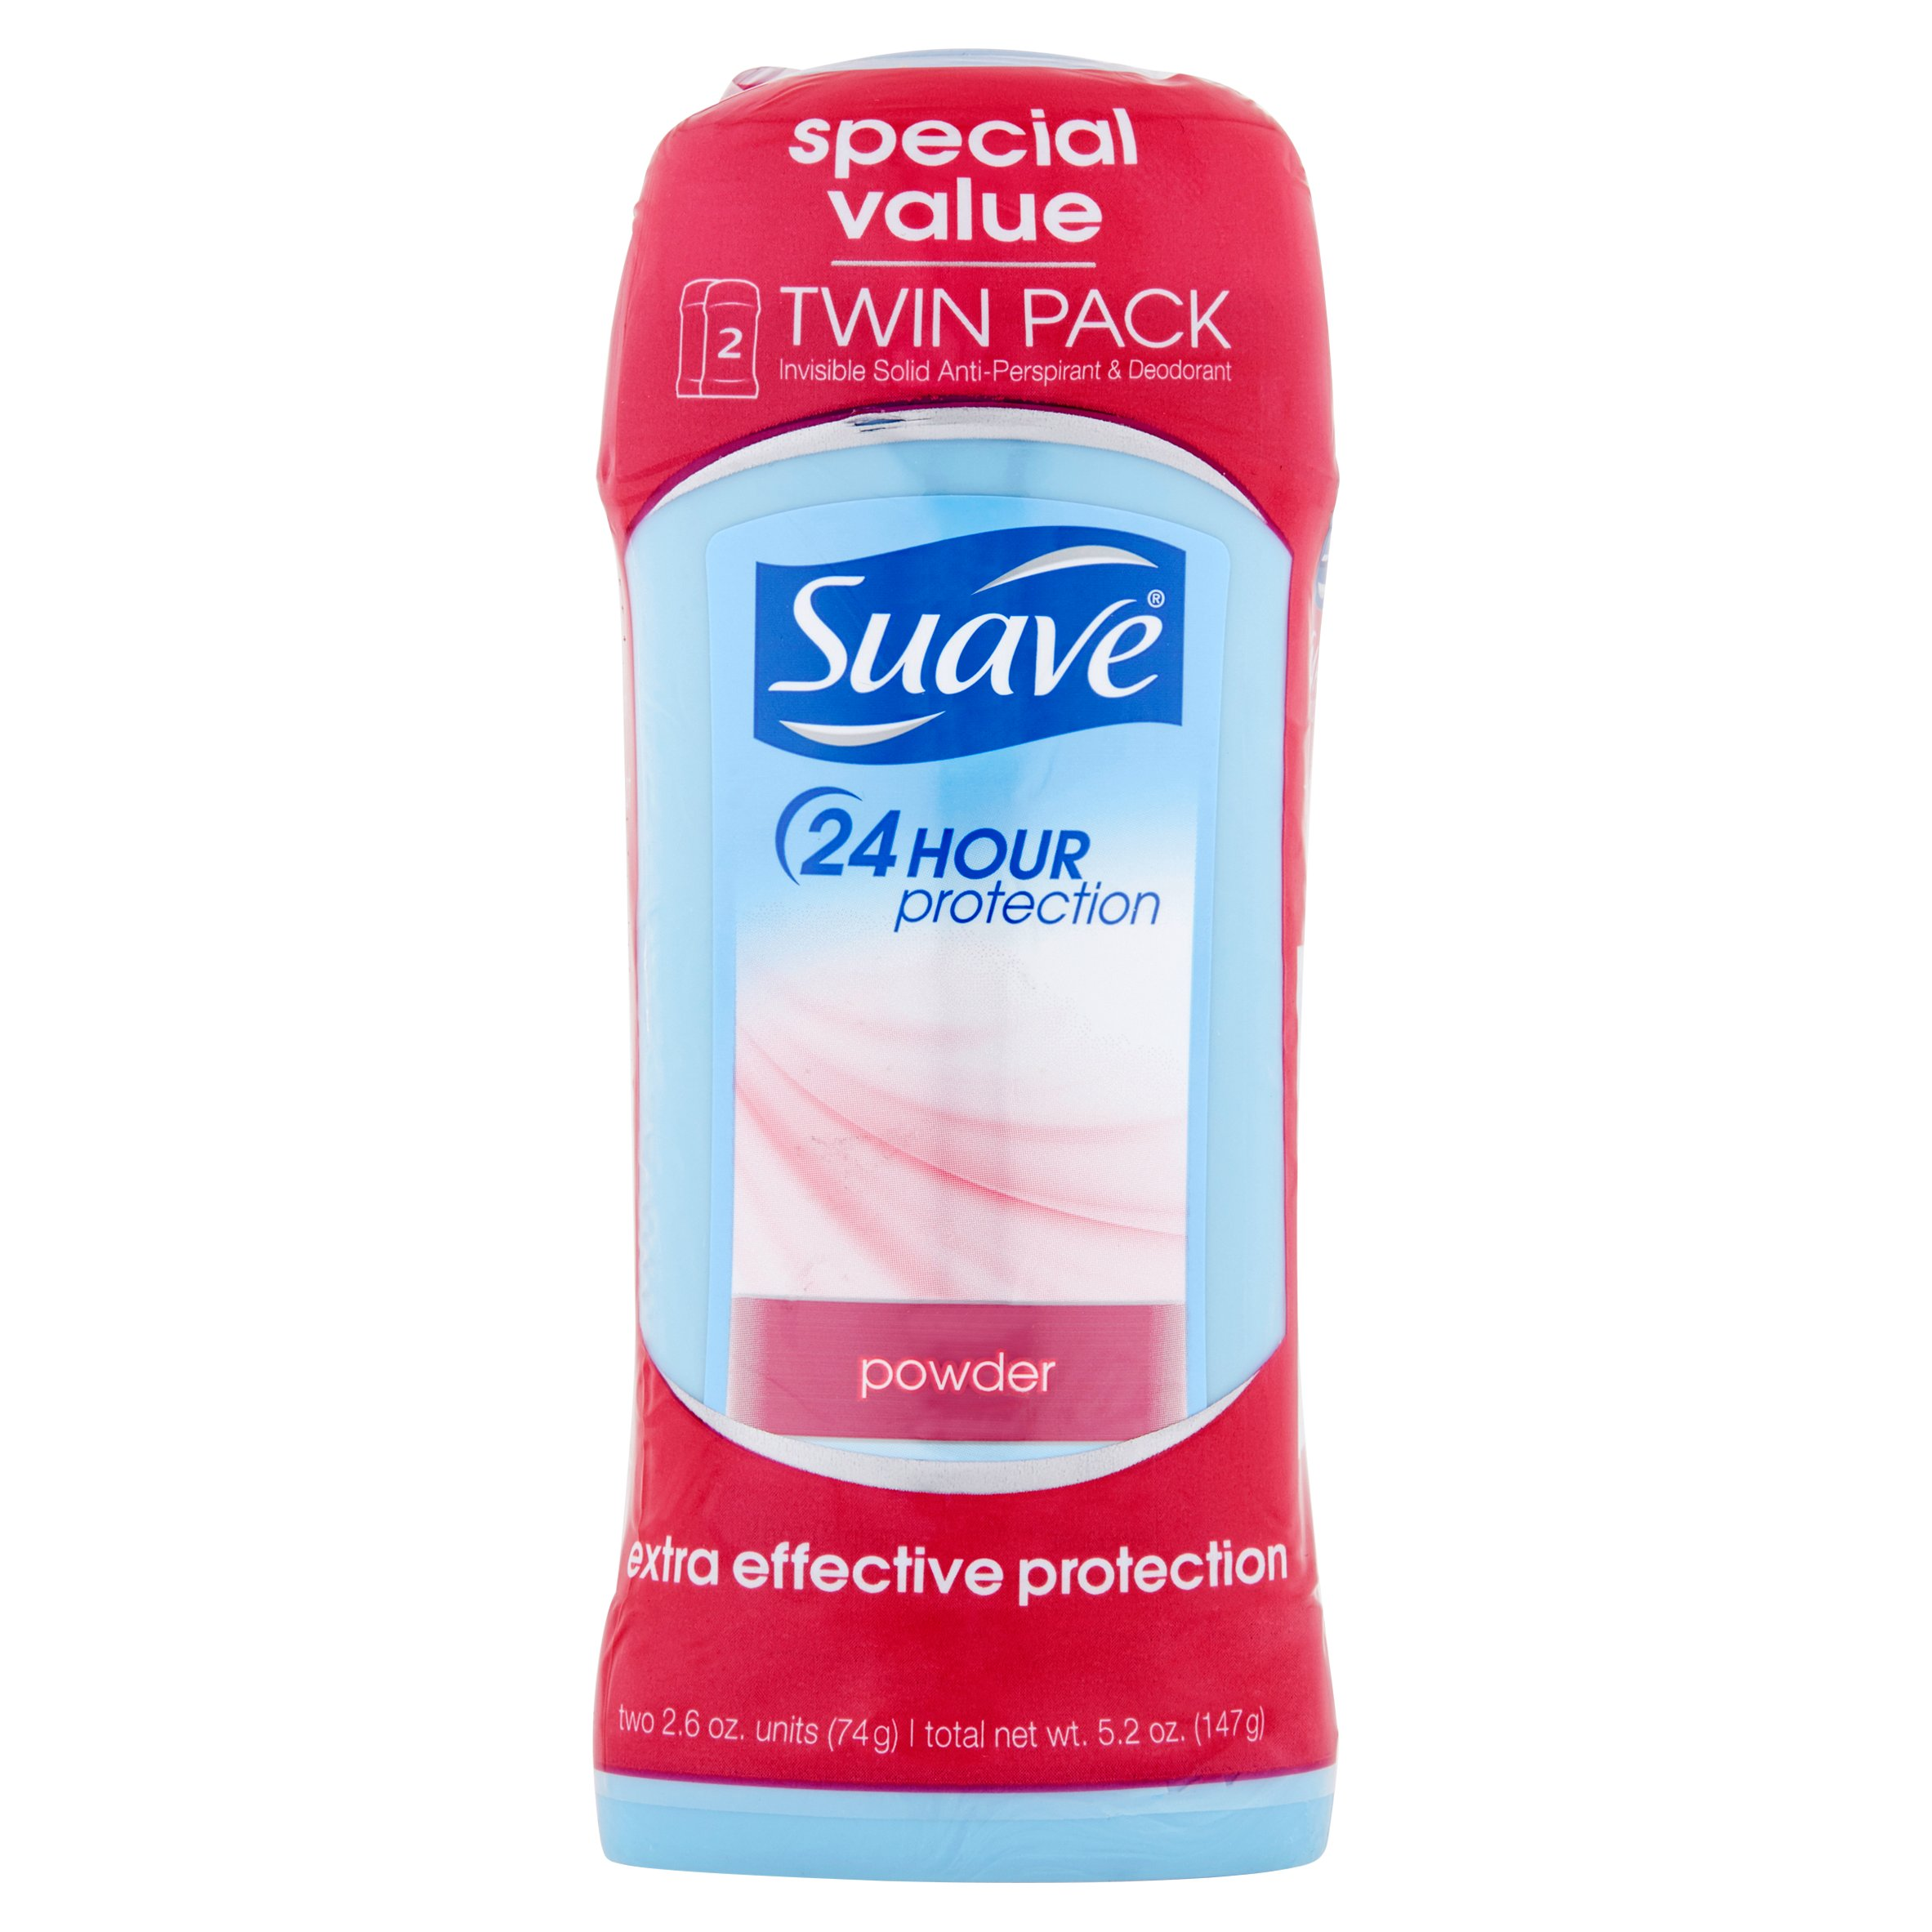 Suave Powder Antiperspirant Deodorant Stick 2.6 oz, Twin Pack